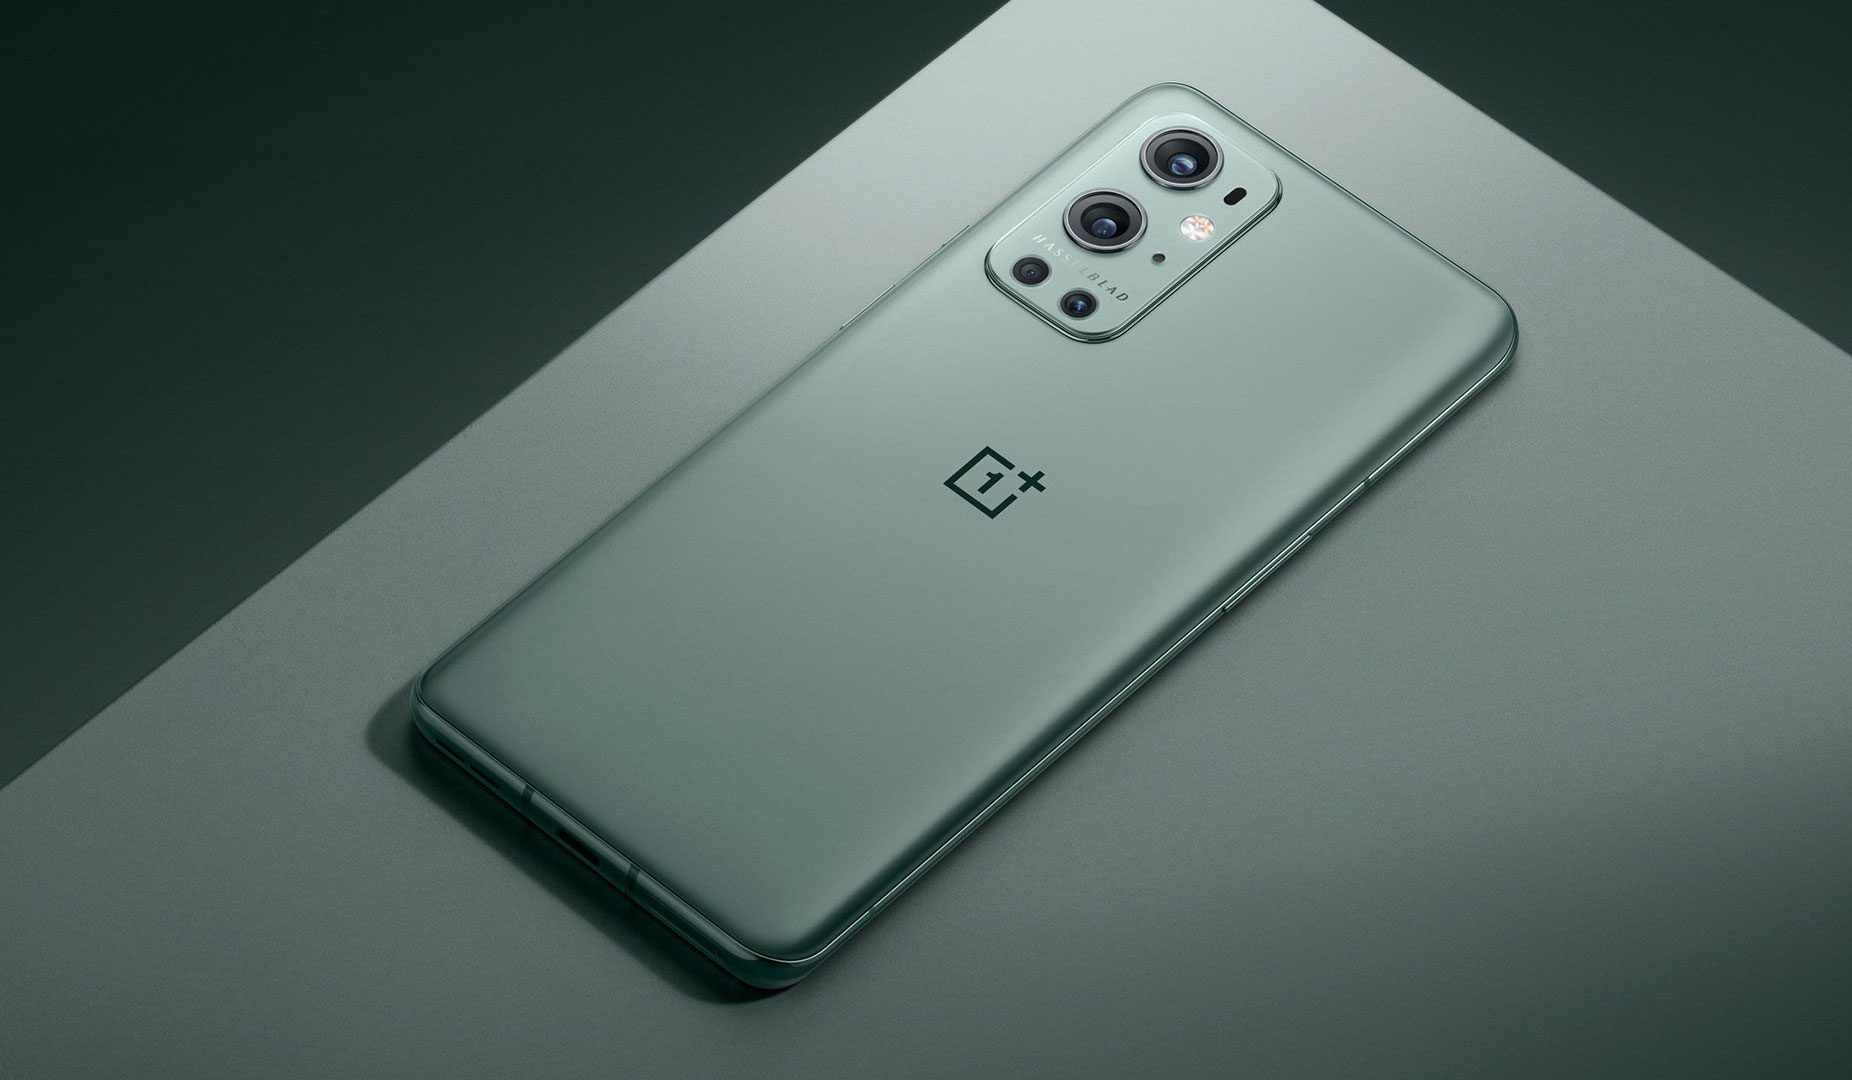 OnePlus 9 Pro and OnePlus 9 introduced